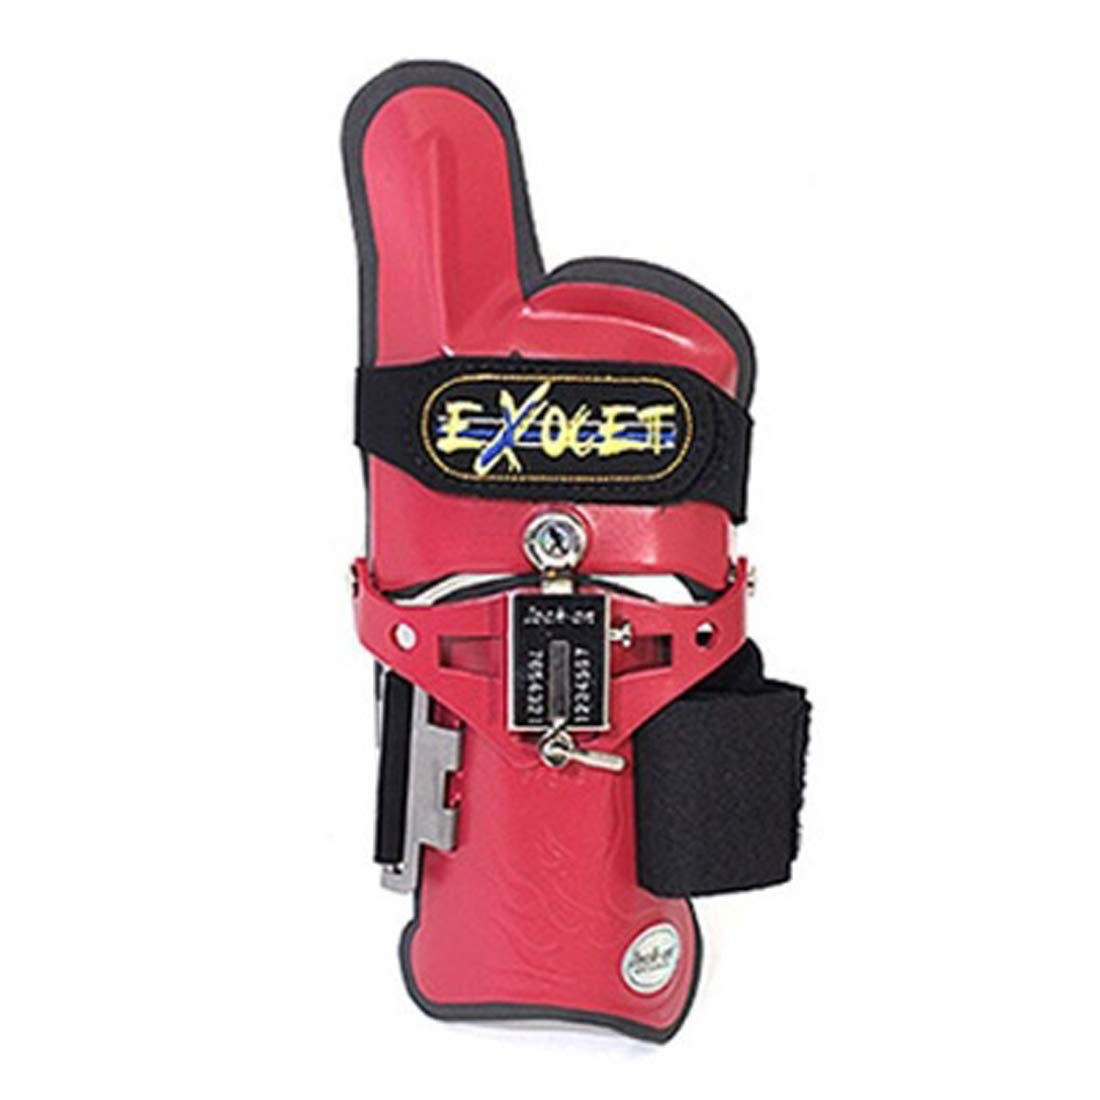 Happy bowling exocet Cobra Type Bowling Wrist Support Accessories Right Hand (Red, S/M)